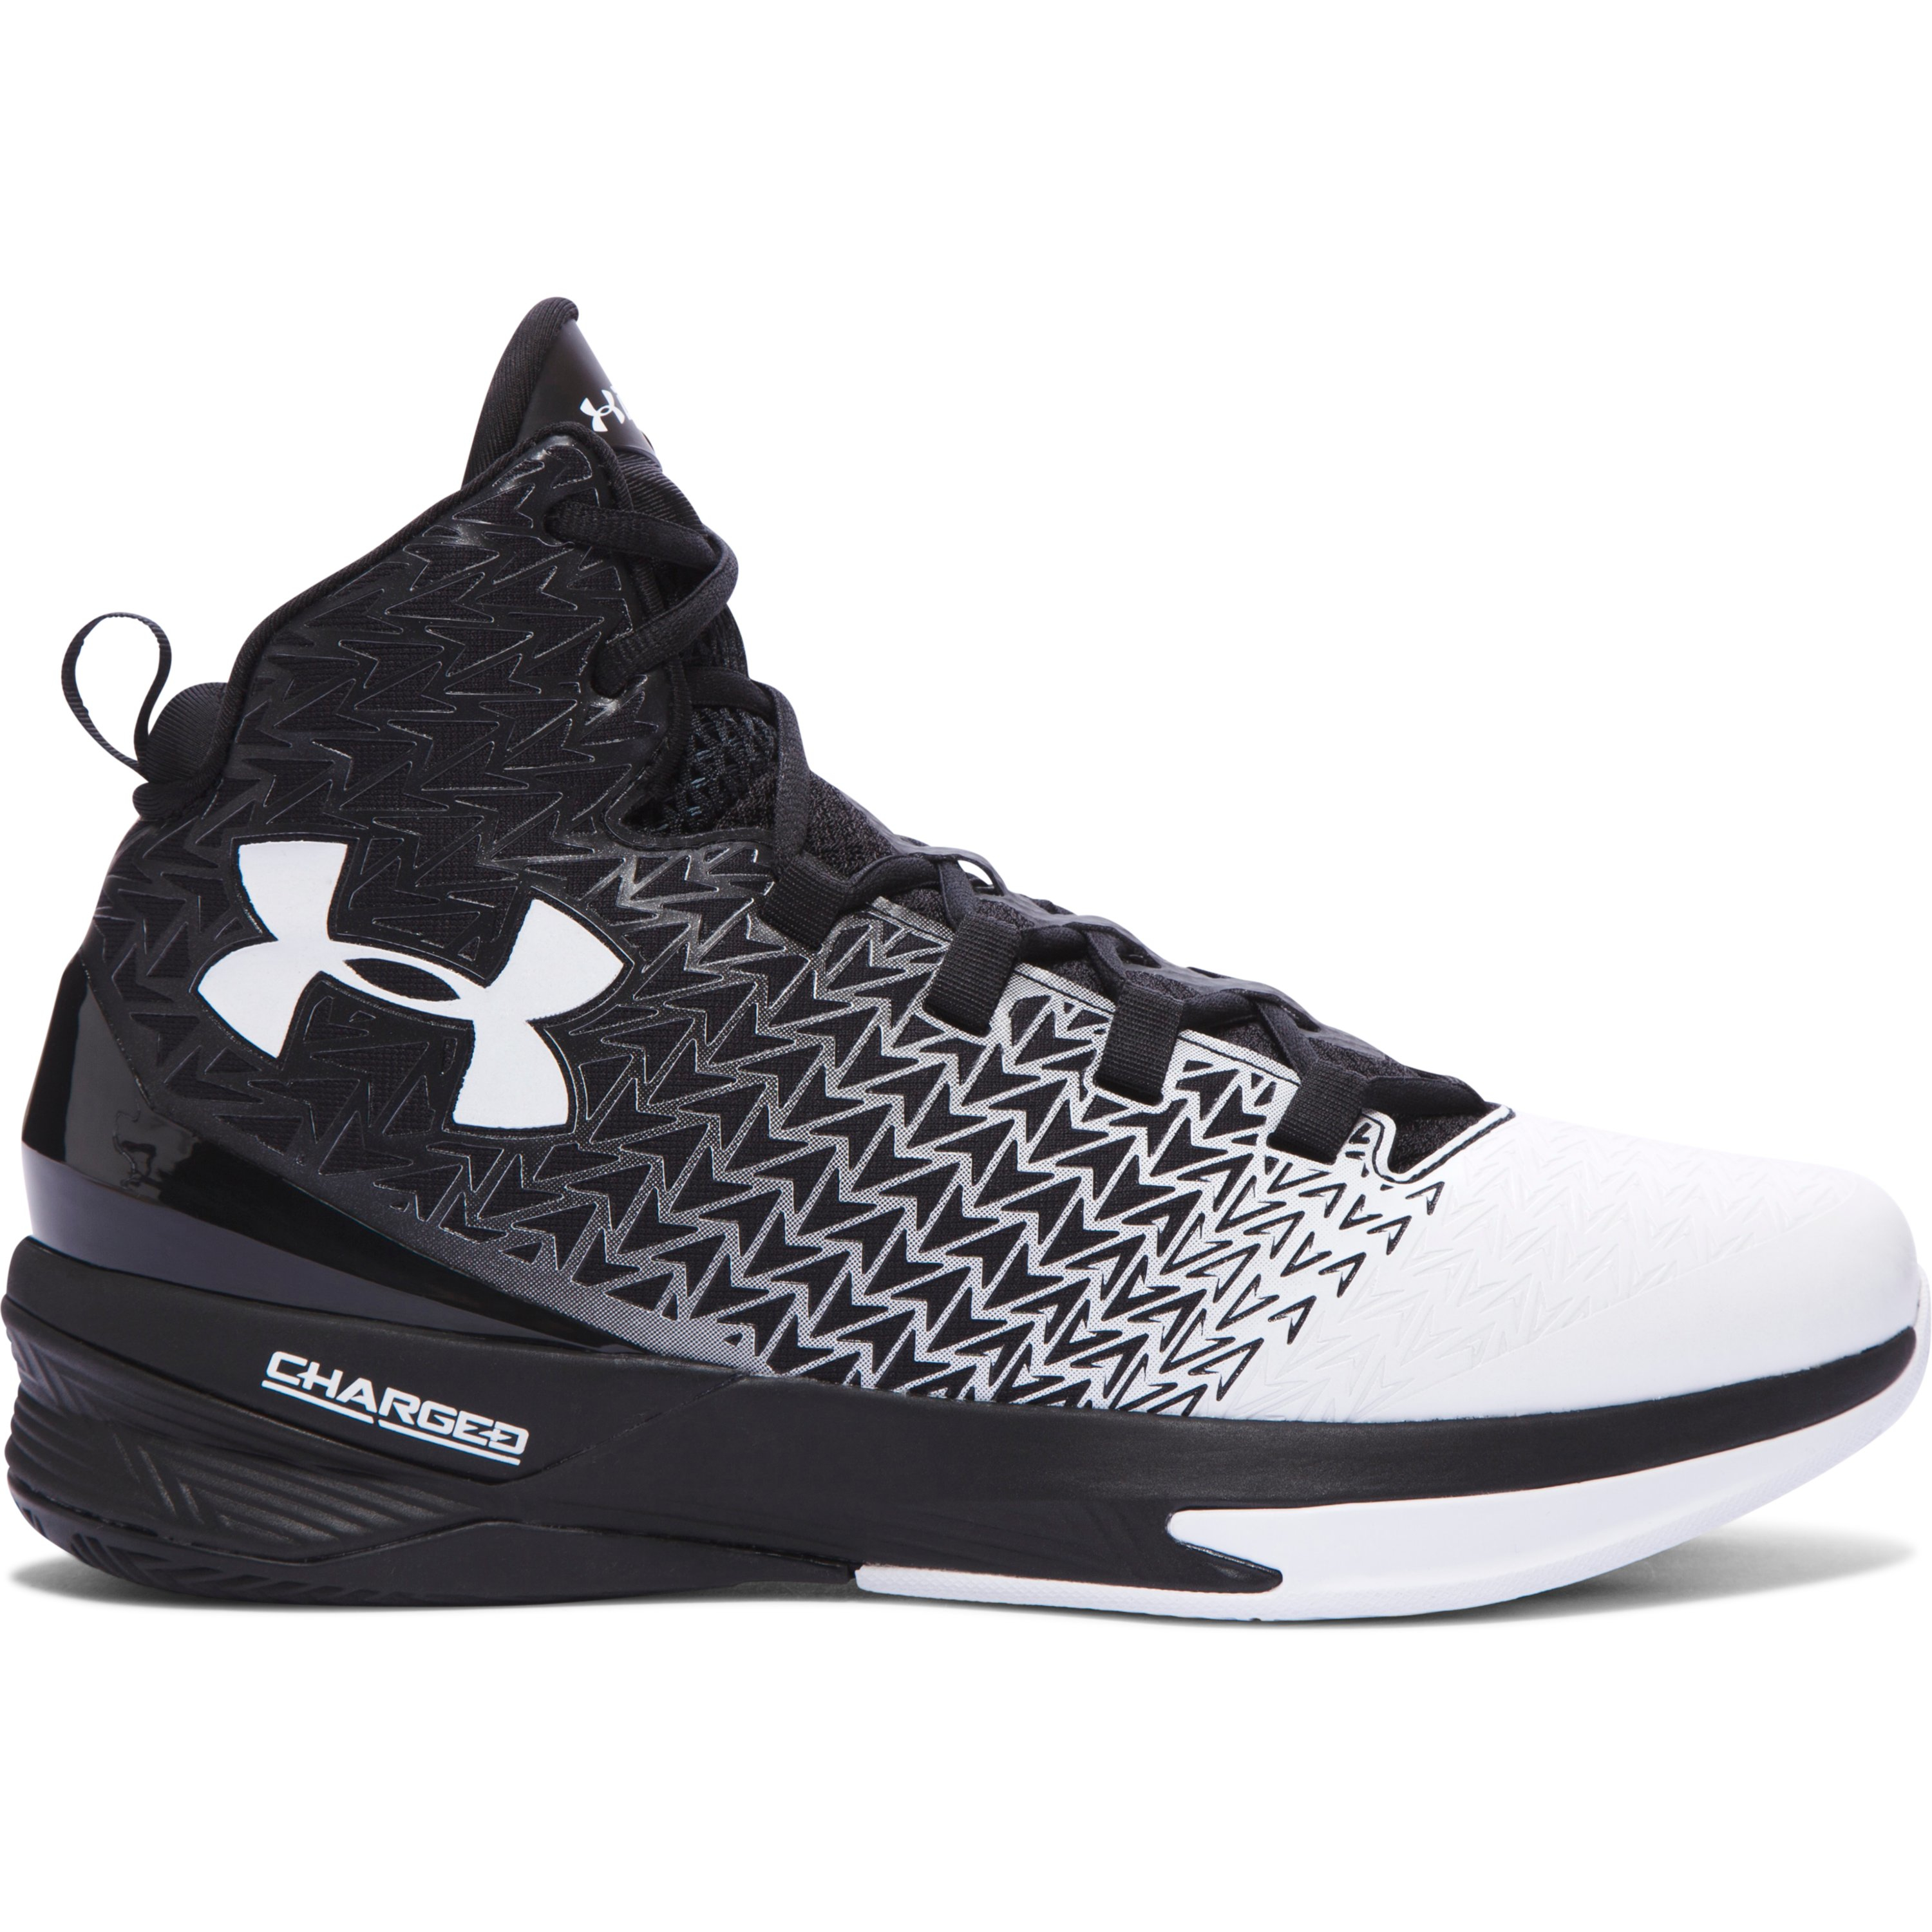 Mens Basketball Shoes With Padding